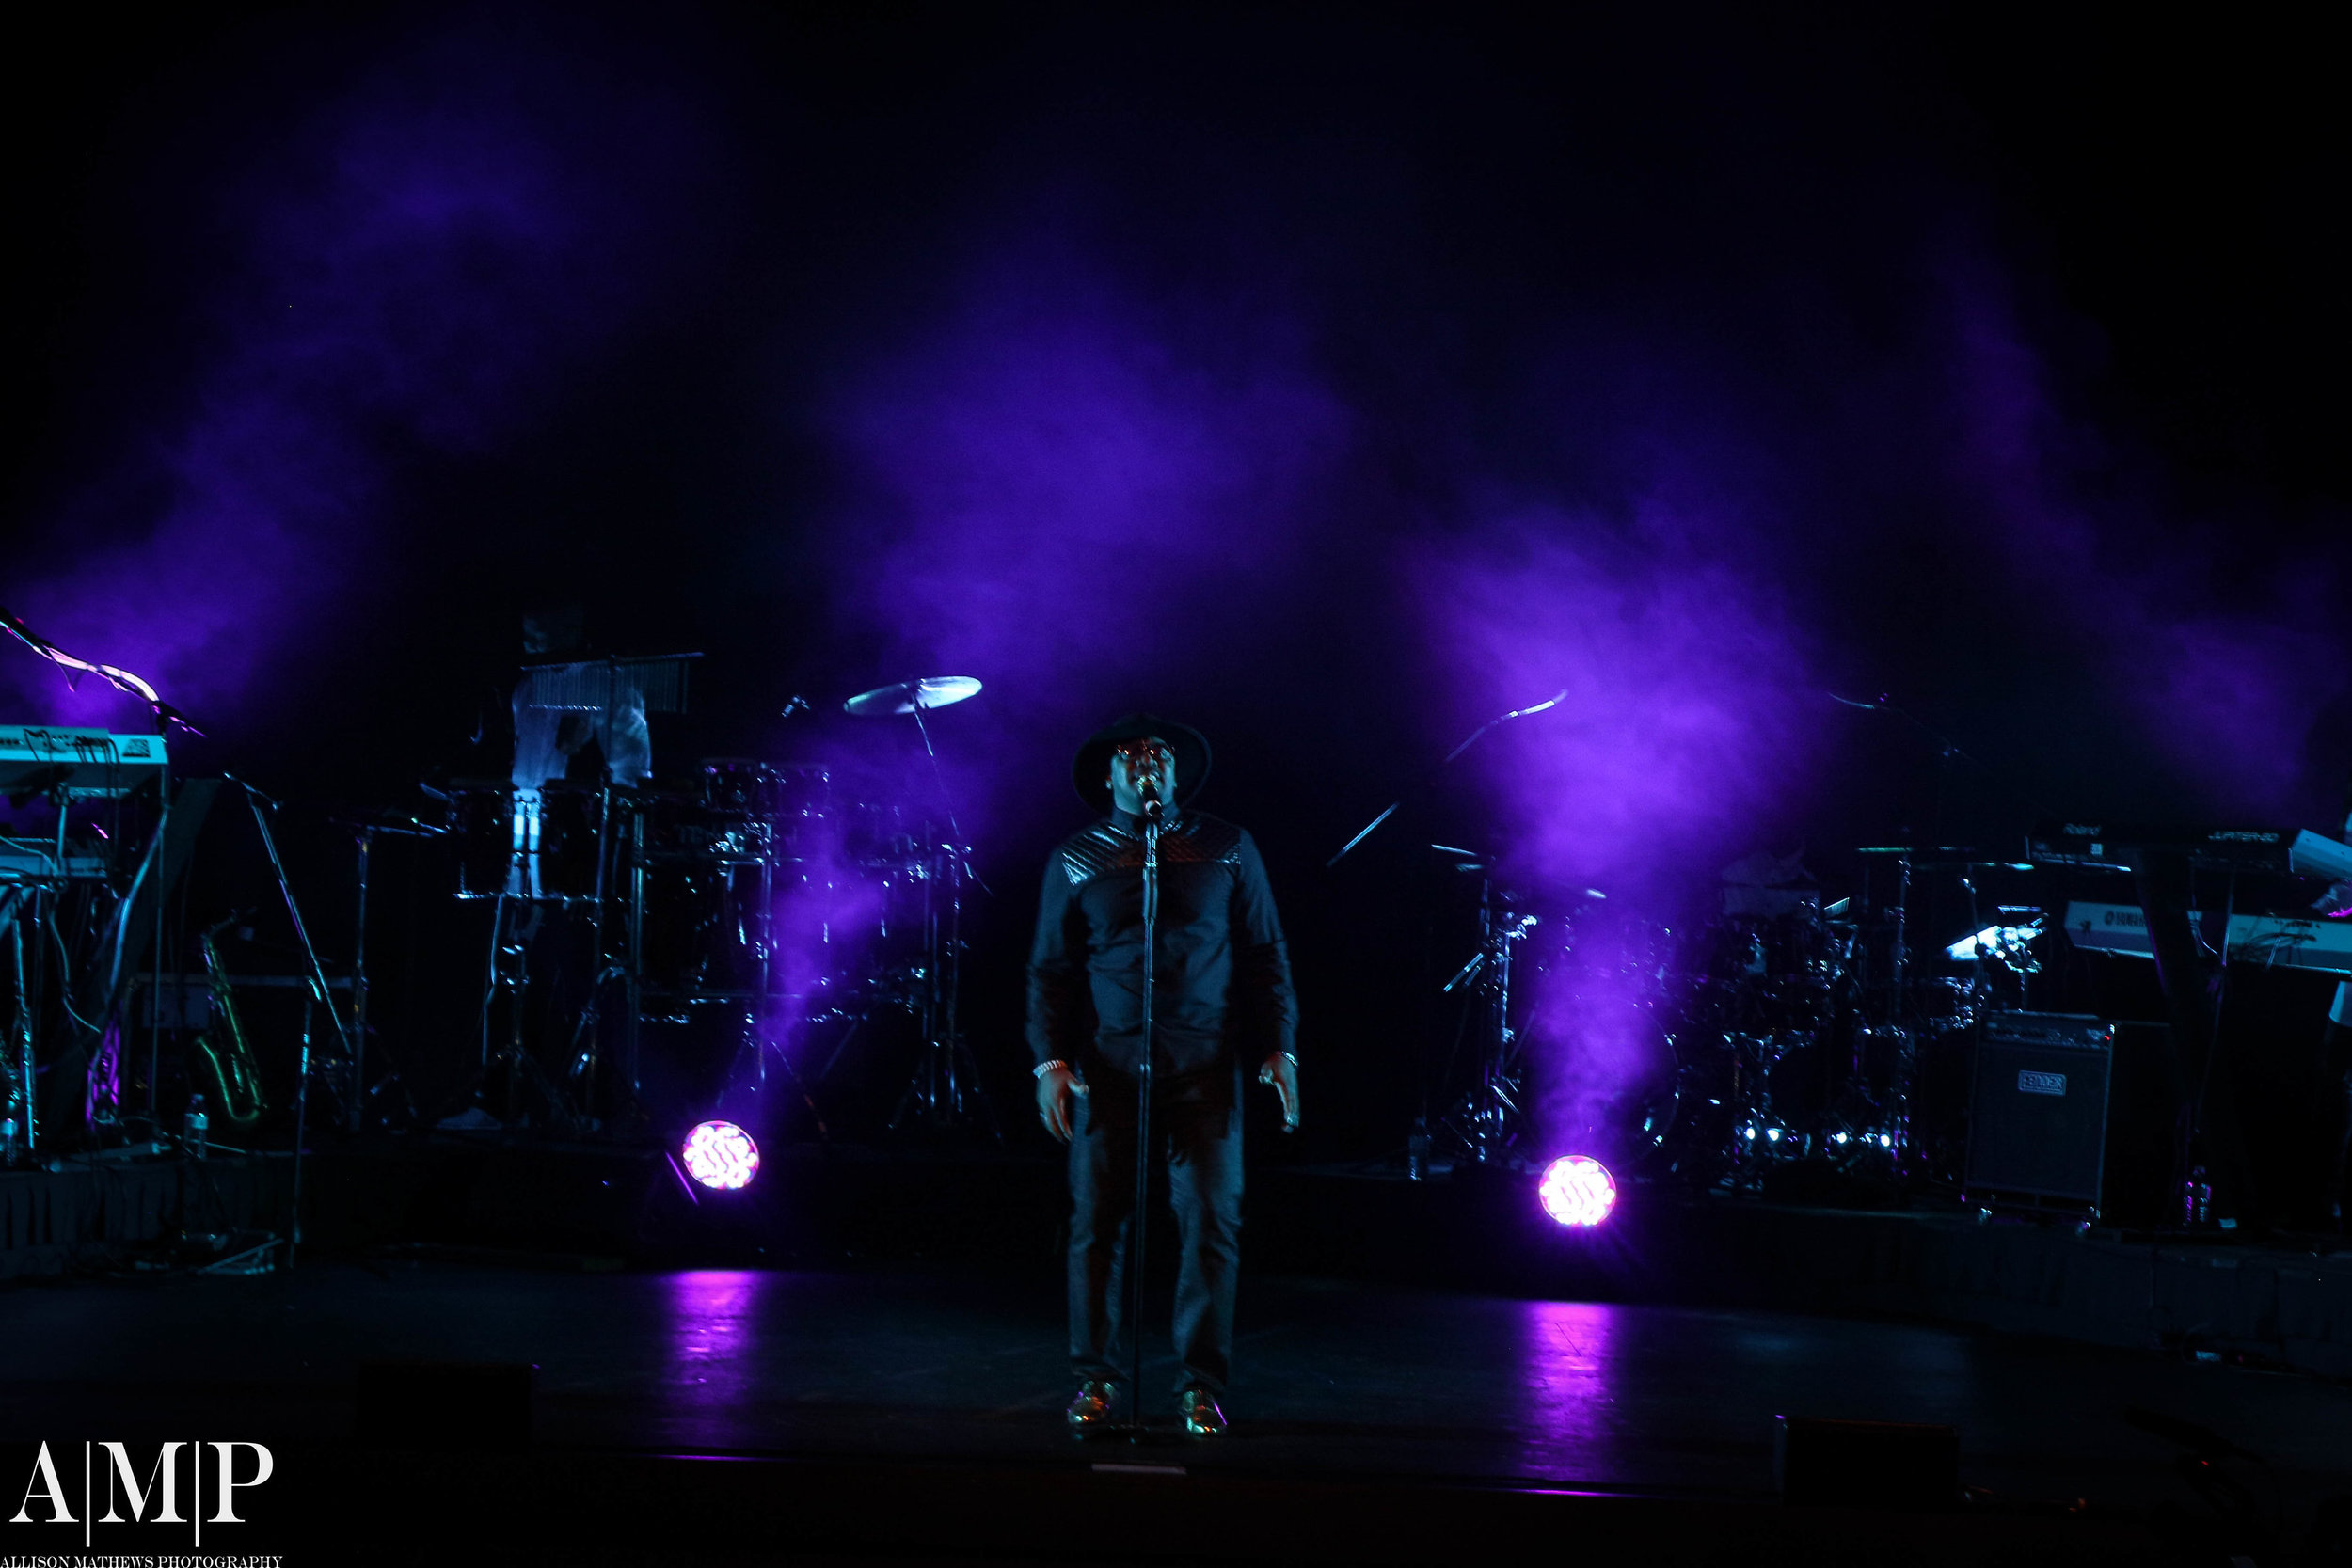 """Vocalist Marcel Anderson gives a heartfelt soulful performance of John Legend's """"All of Me""""."""